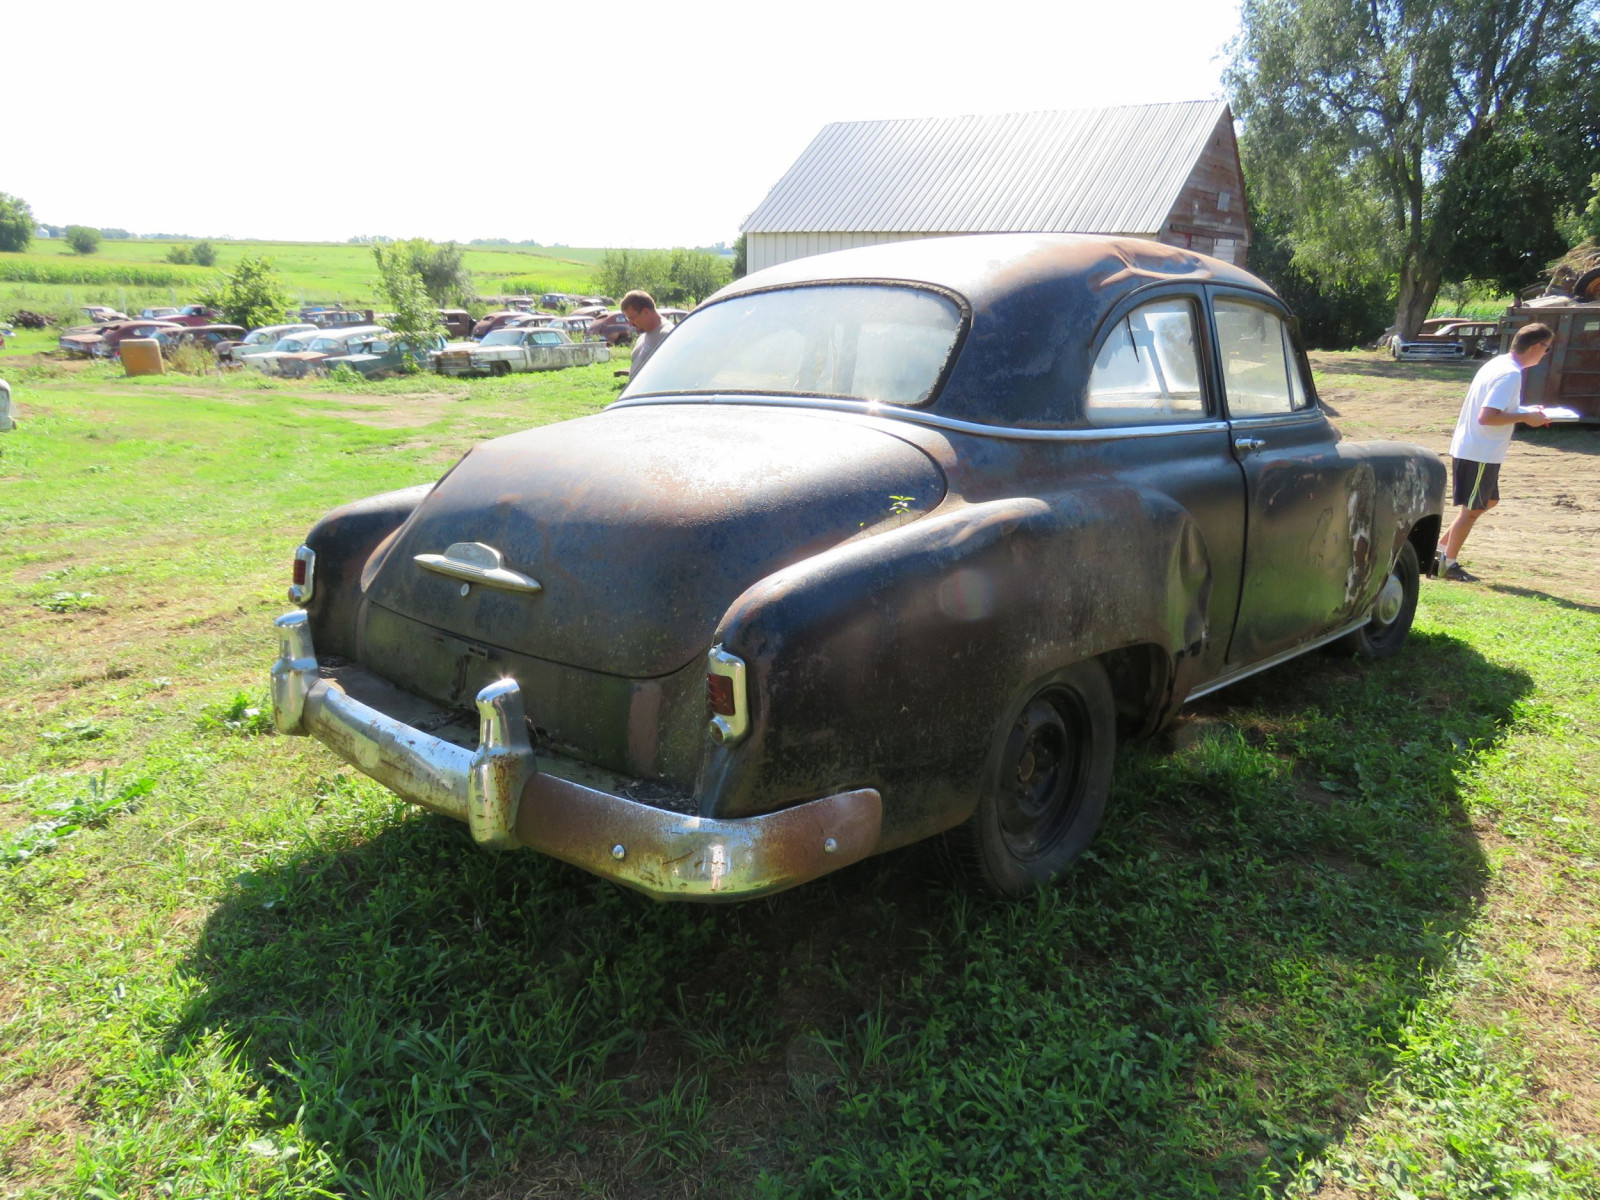 1952 Chevrolet 2dr Sedan for Project or Parts - Image 5